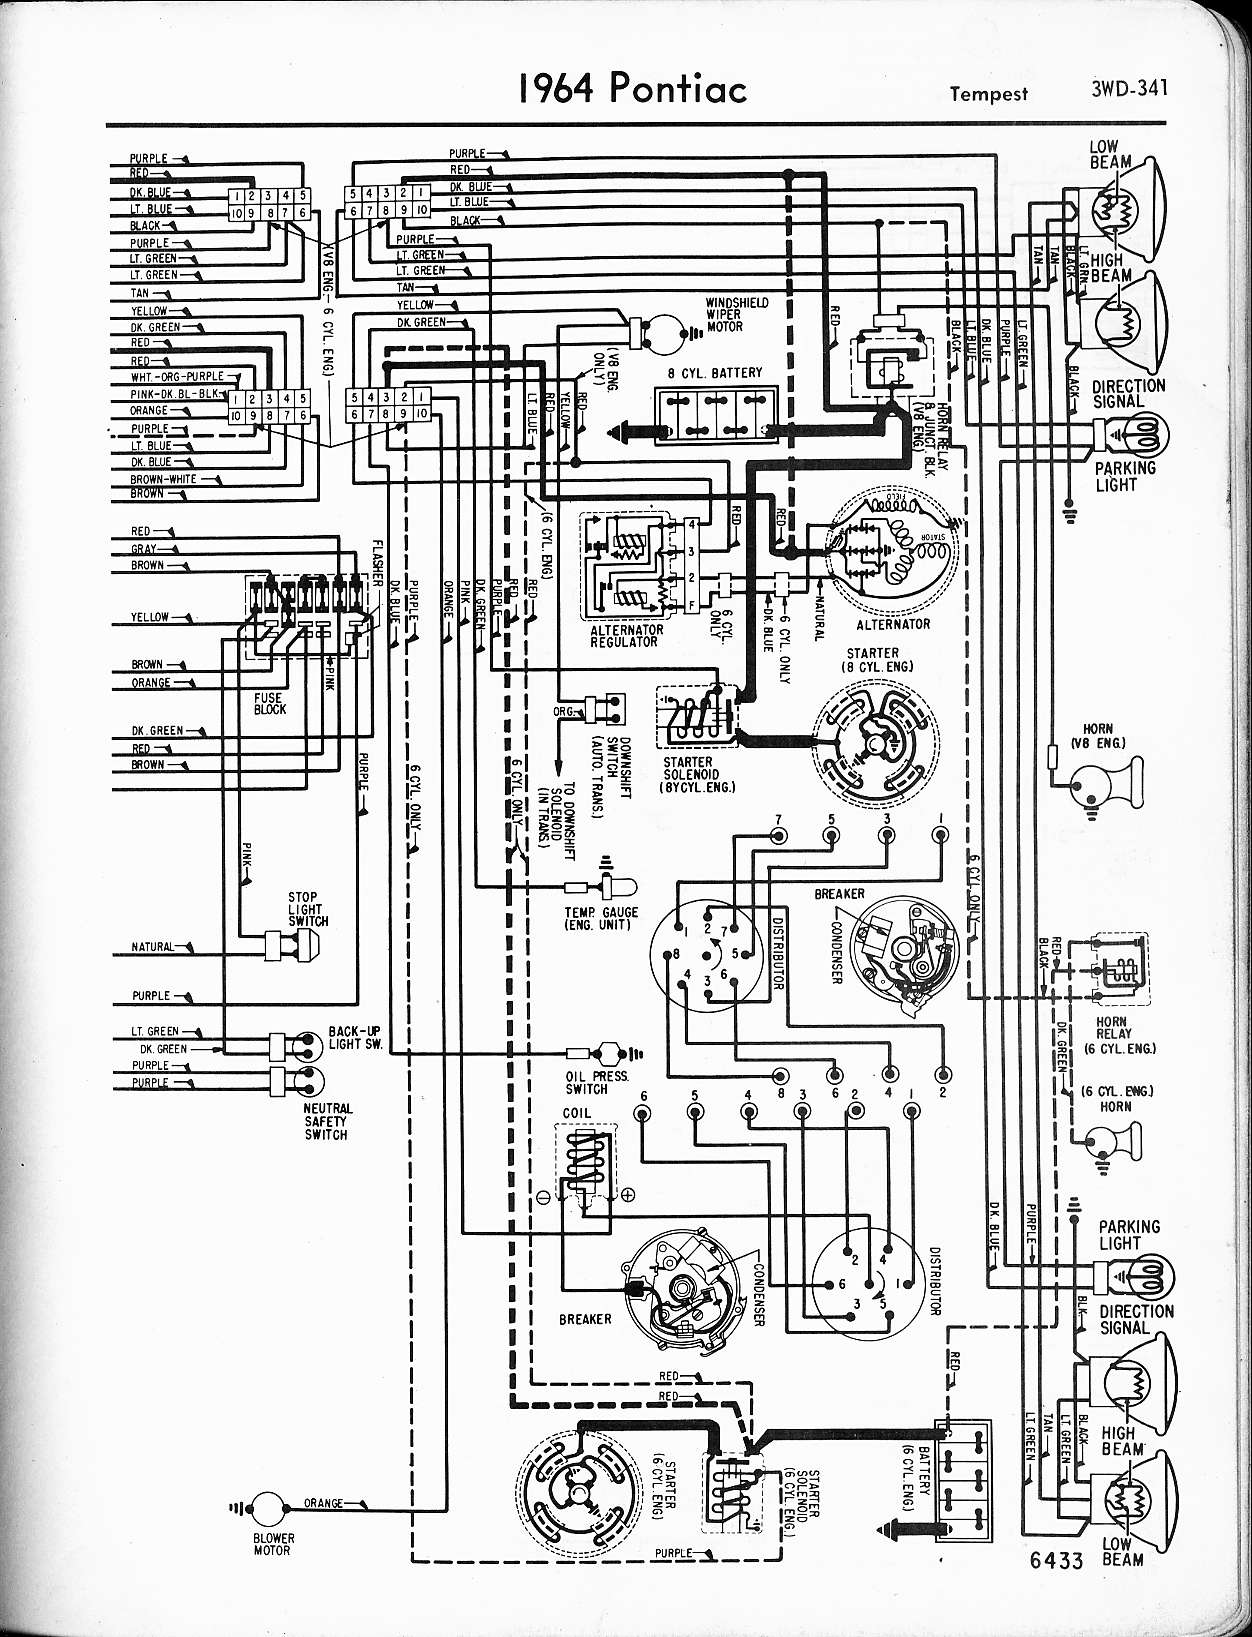 1961 Mga Wiring Diagram 2000 International 4700 Dt466 Wiring ... Ibanez Rg Wiring Diagram on